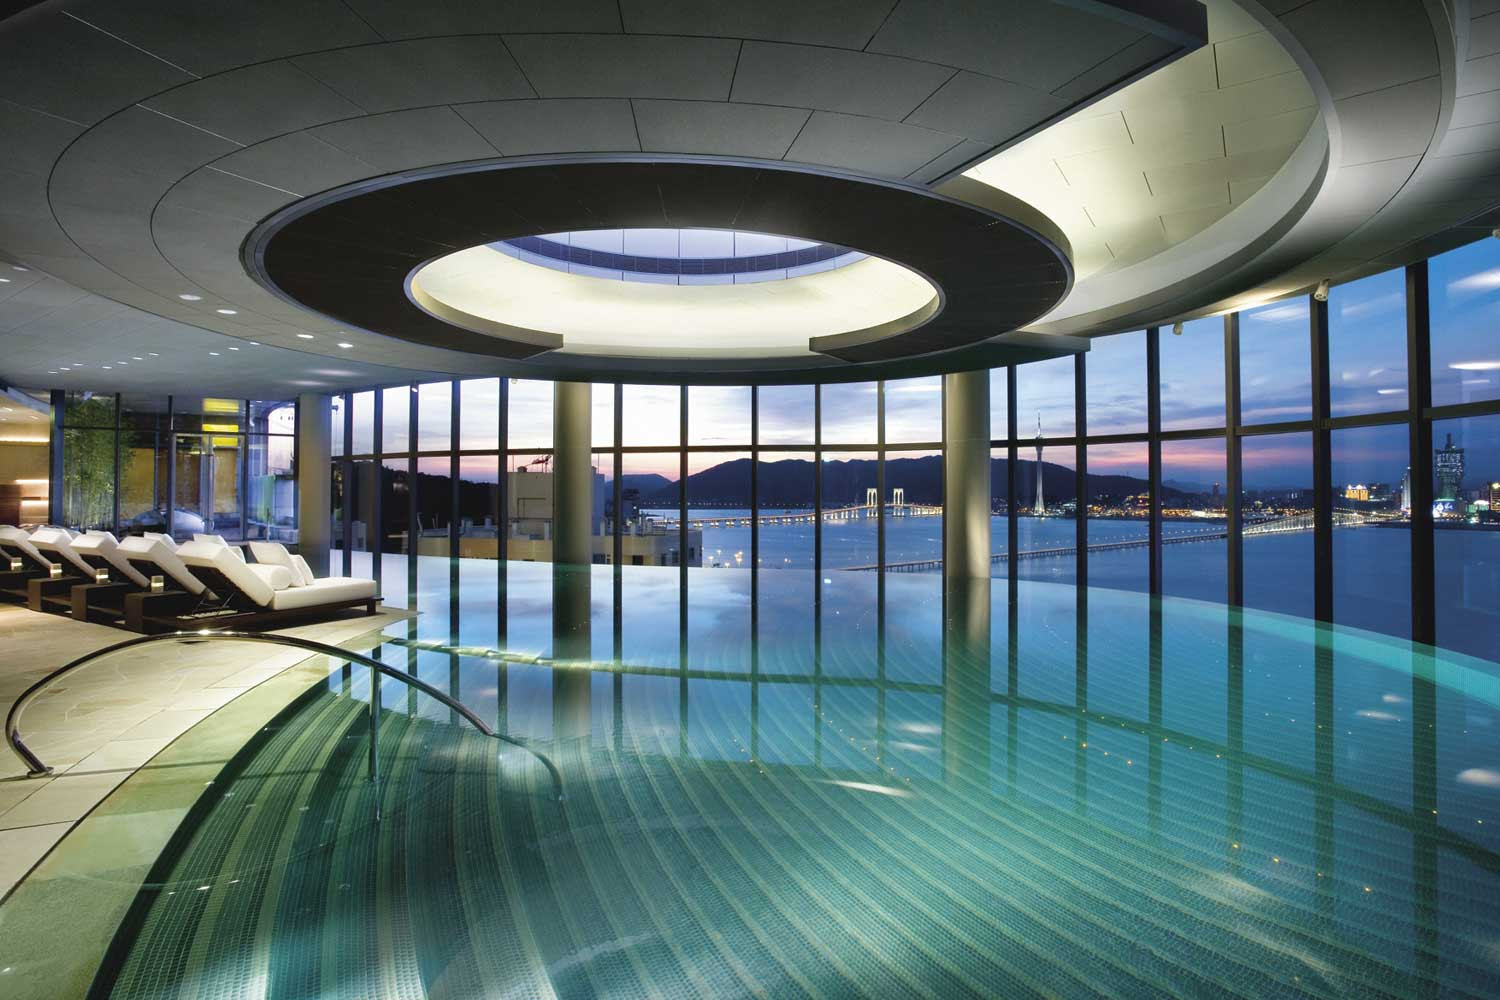 Swimming Pool at Crown Macau voted One of the World's Best